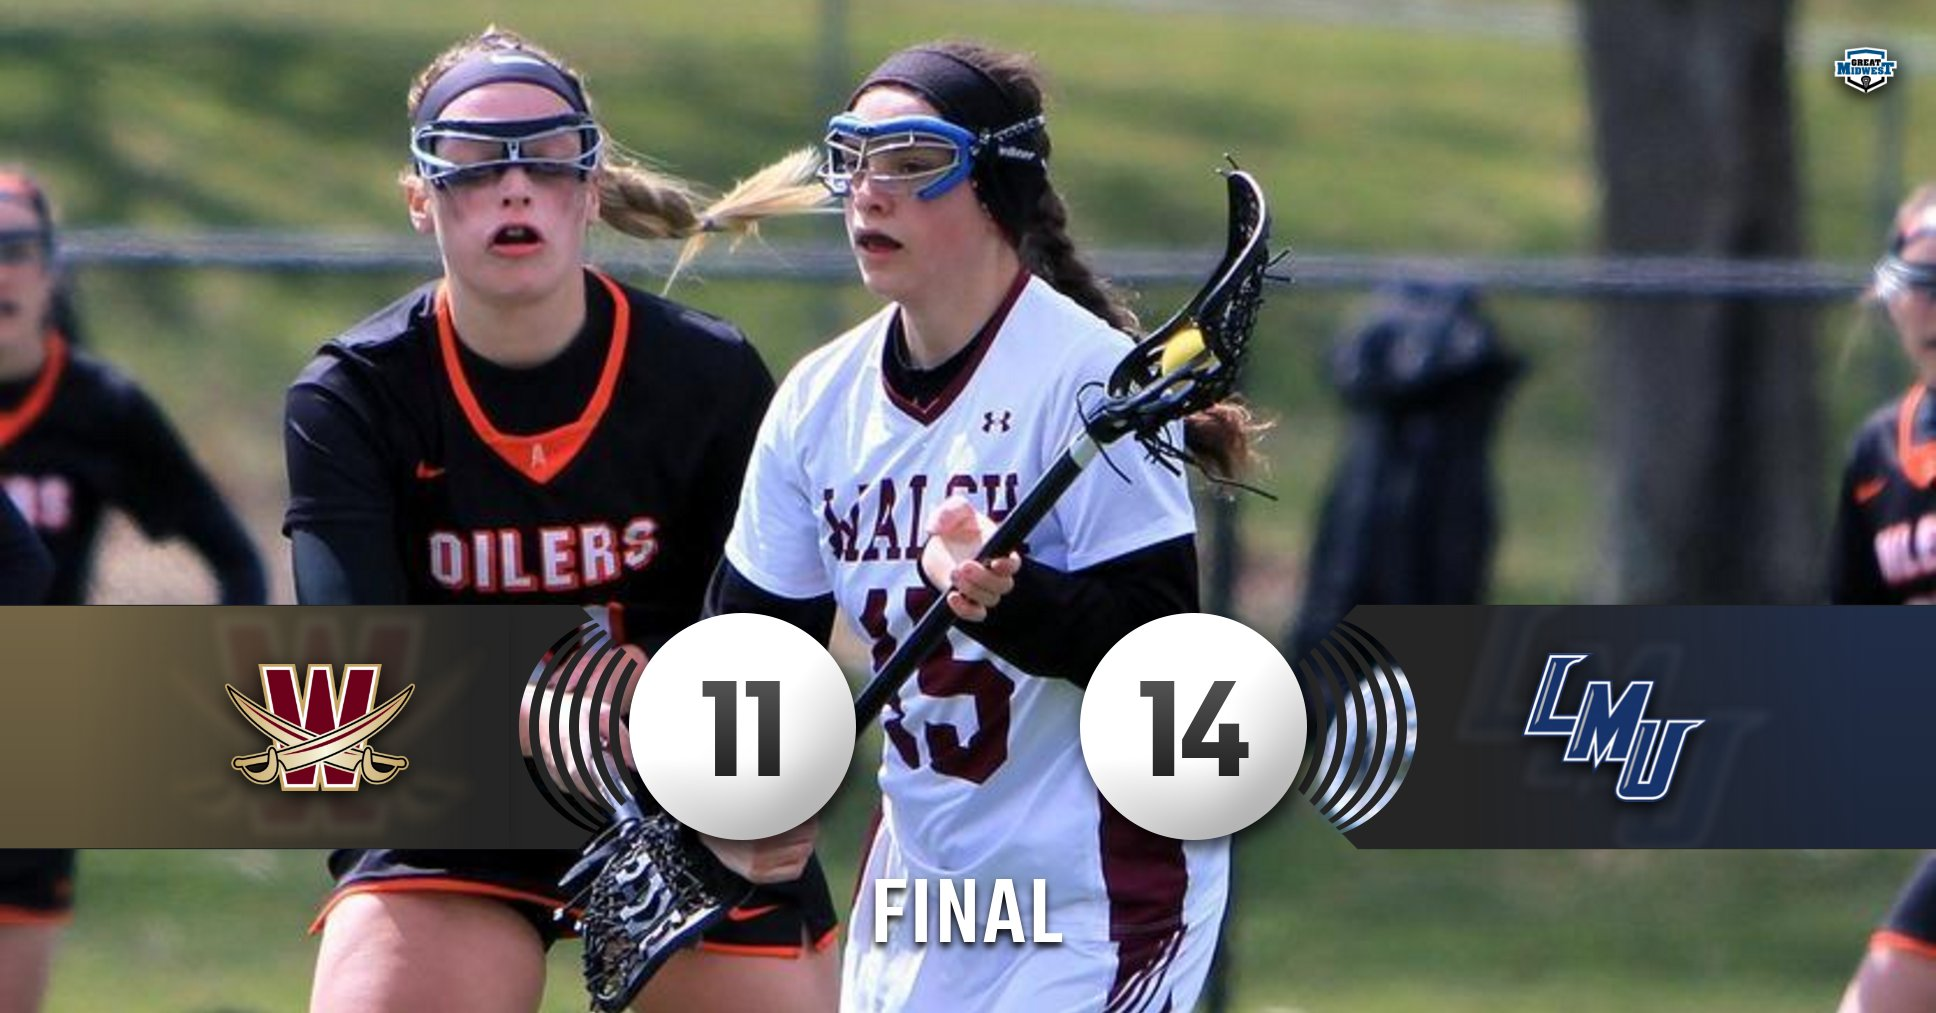 Cavaliers Drop Road Game at Lincoln Memorial, 14-11